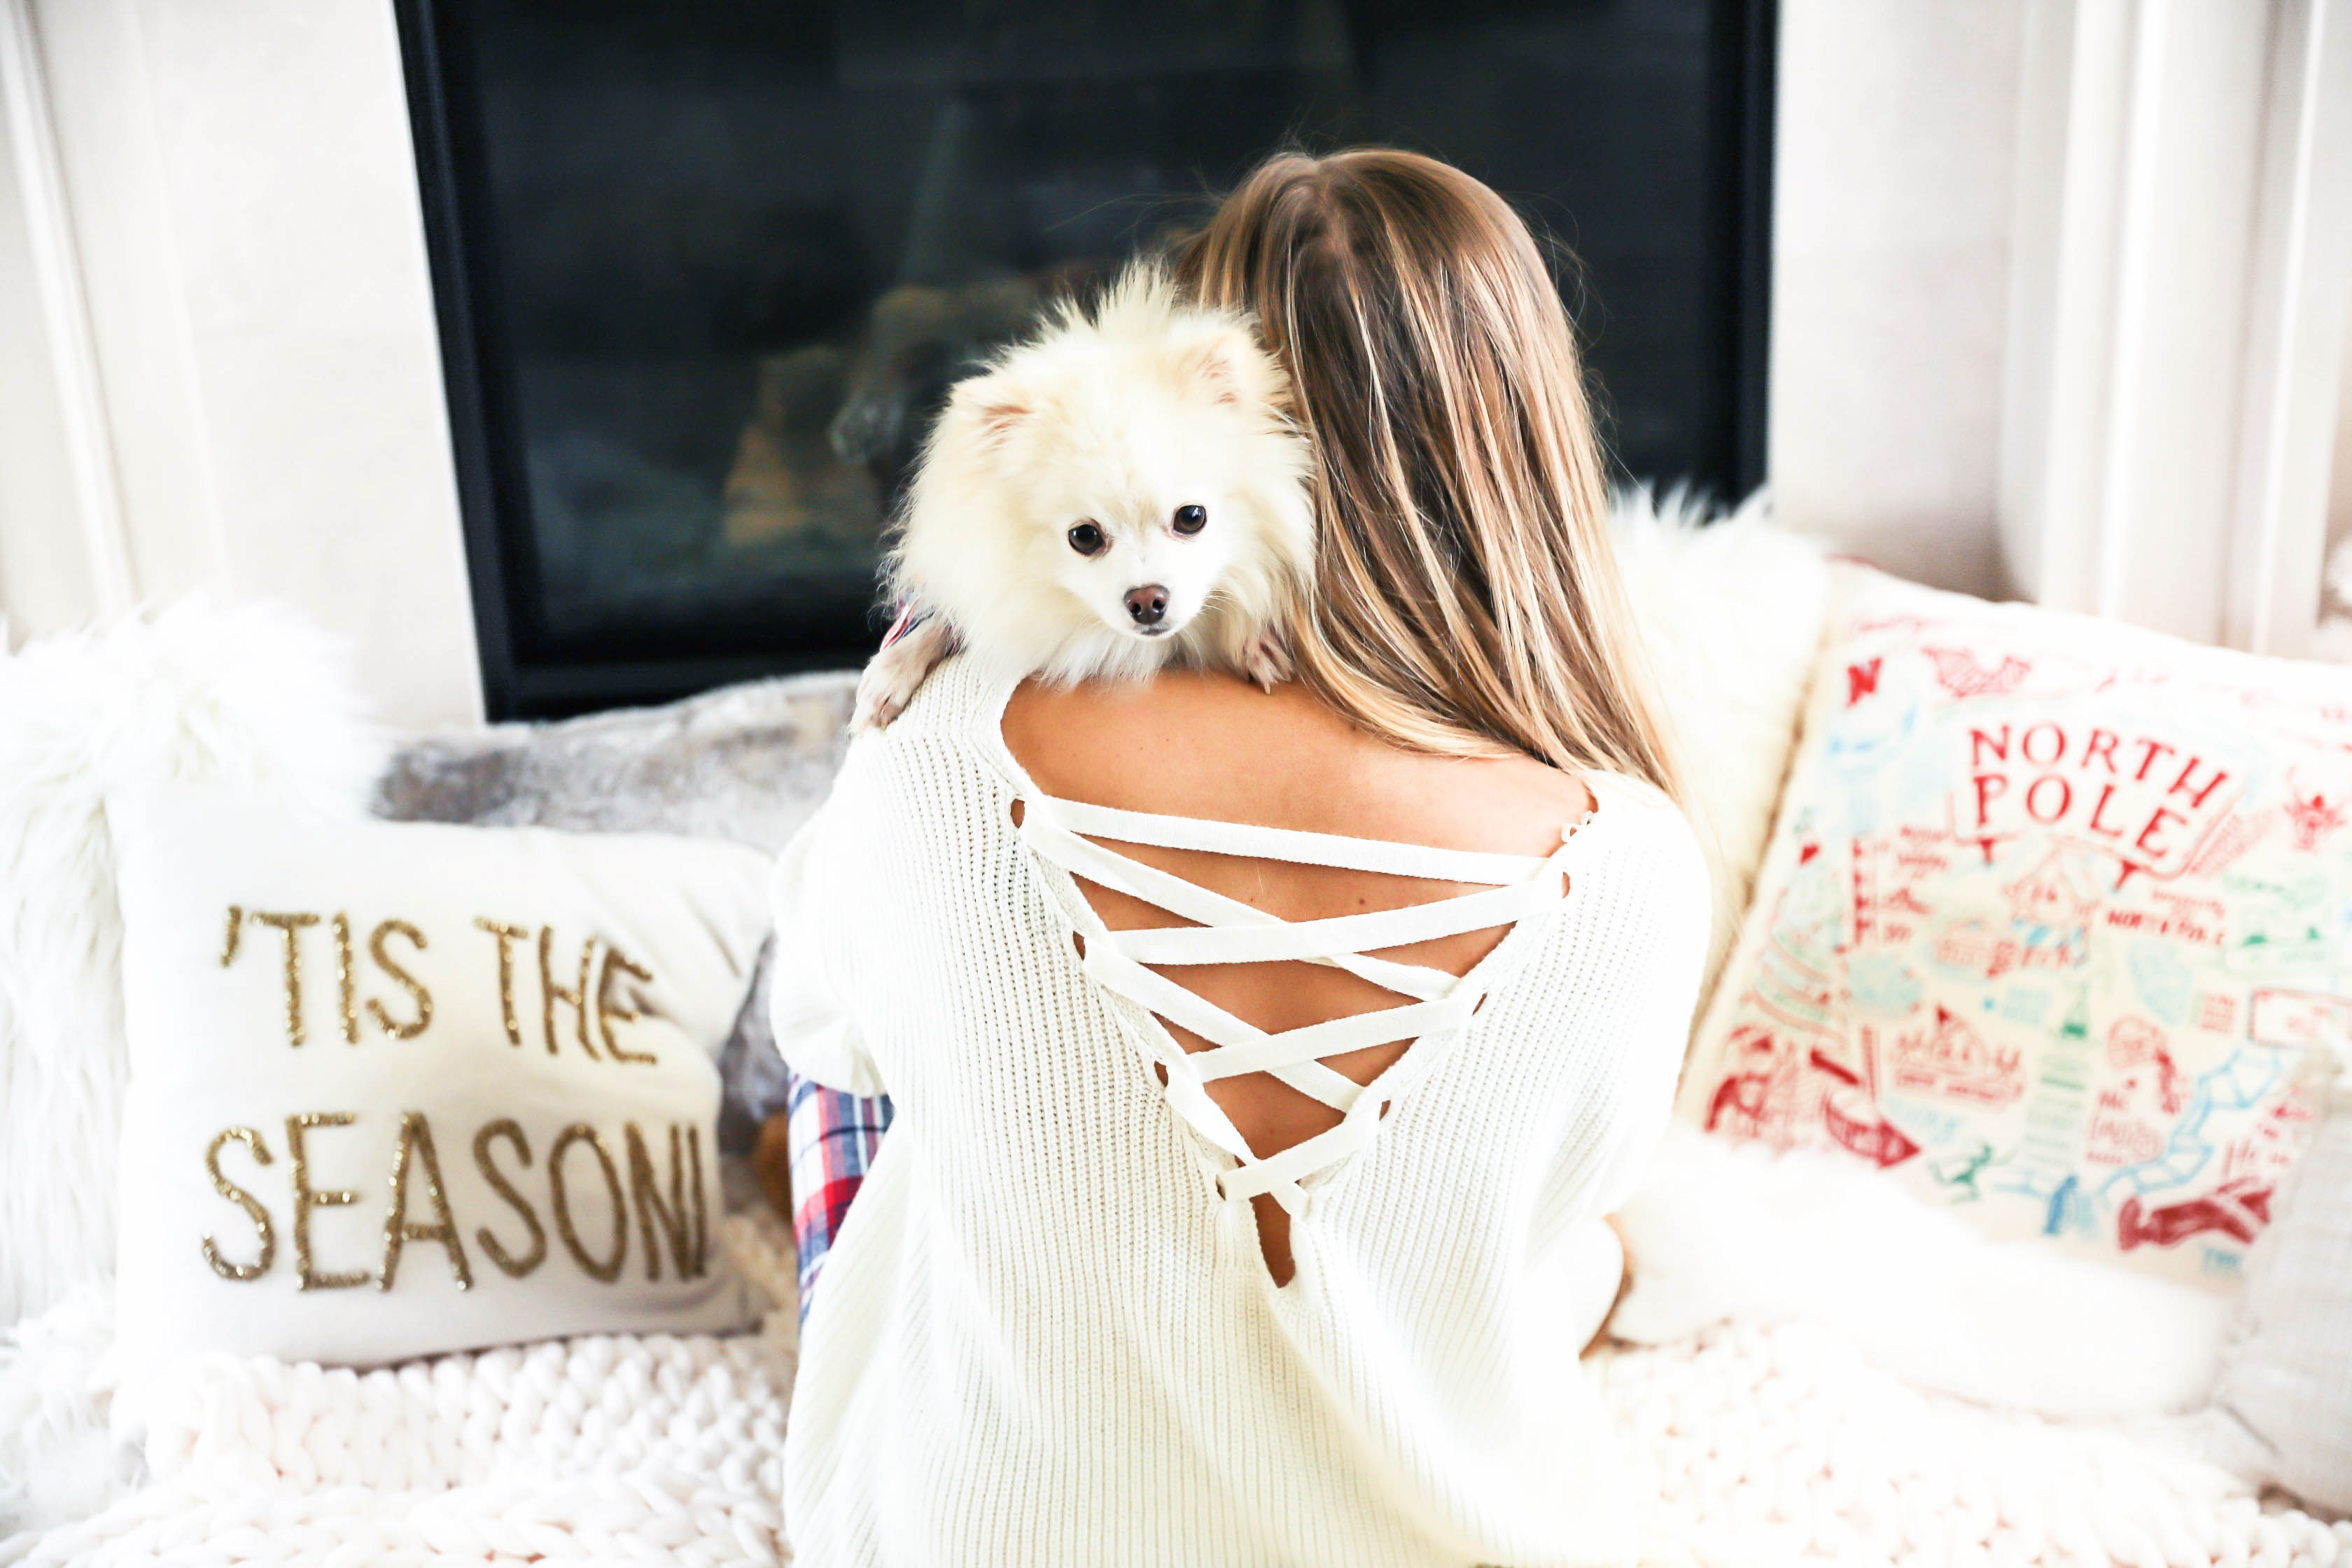 Matching pajamas with dog! Cute plaid matching pajamas with my white pomeranian! The cutest Pomeranian christmas photos! Details on fashion blog daily dose of charm by lauren lindmark